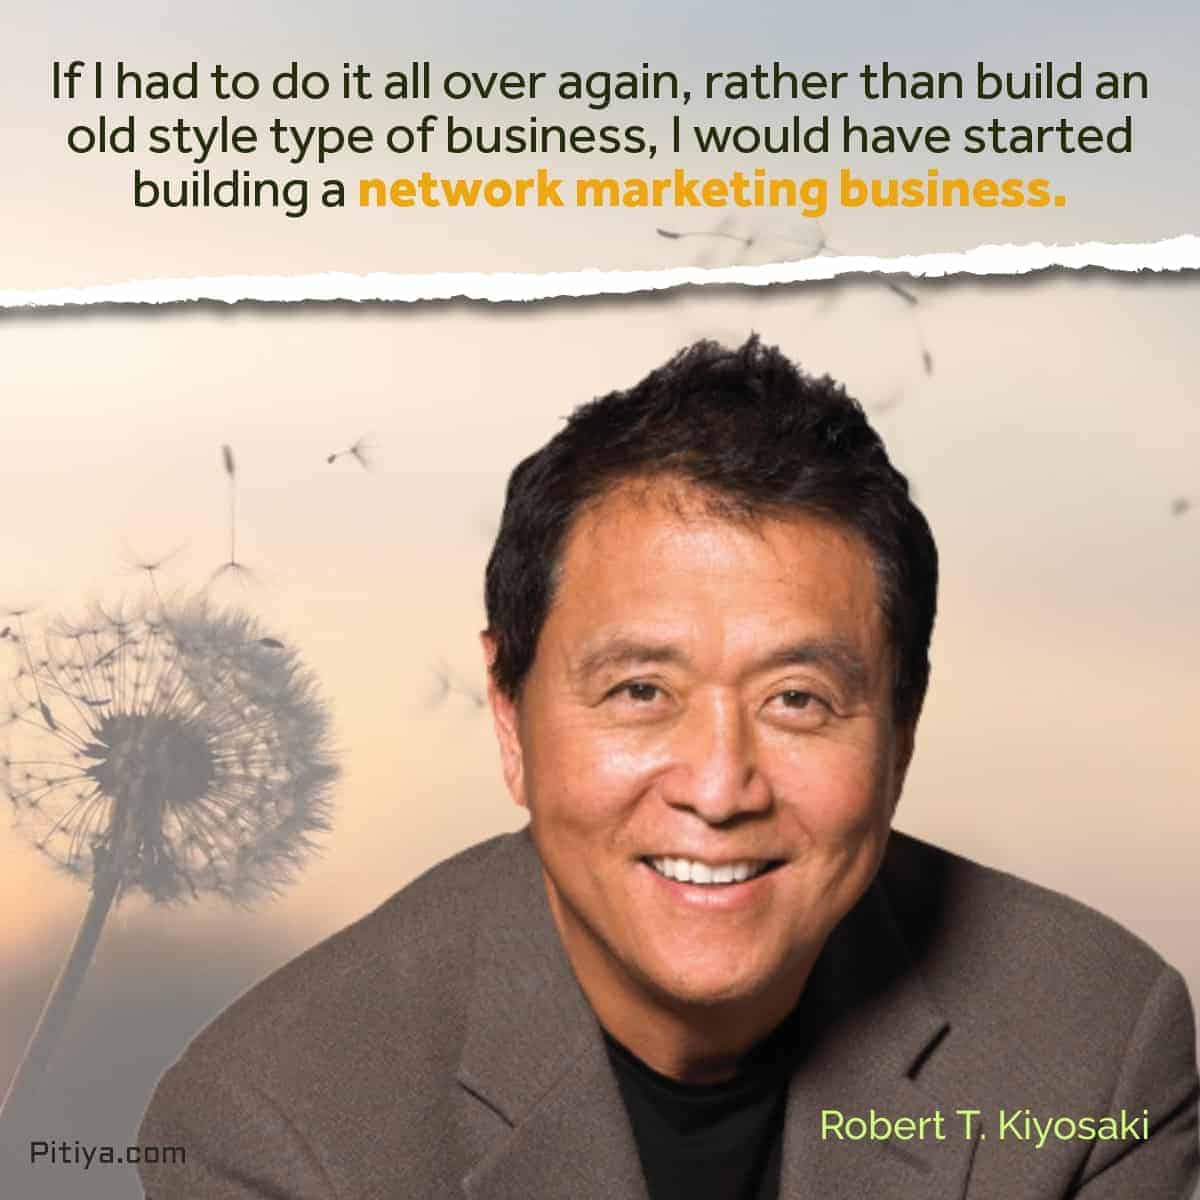 200+ Most-Renown Network Marketing Quotes by Business